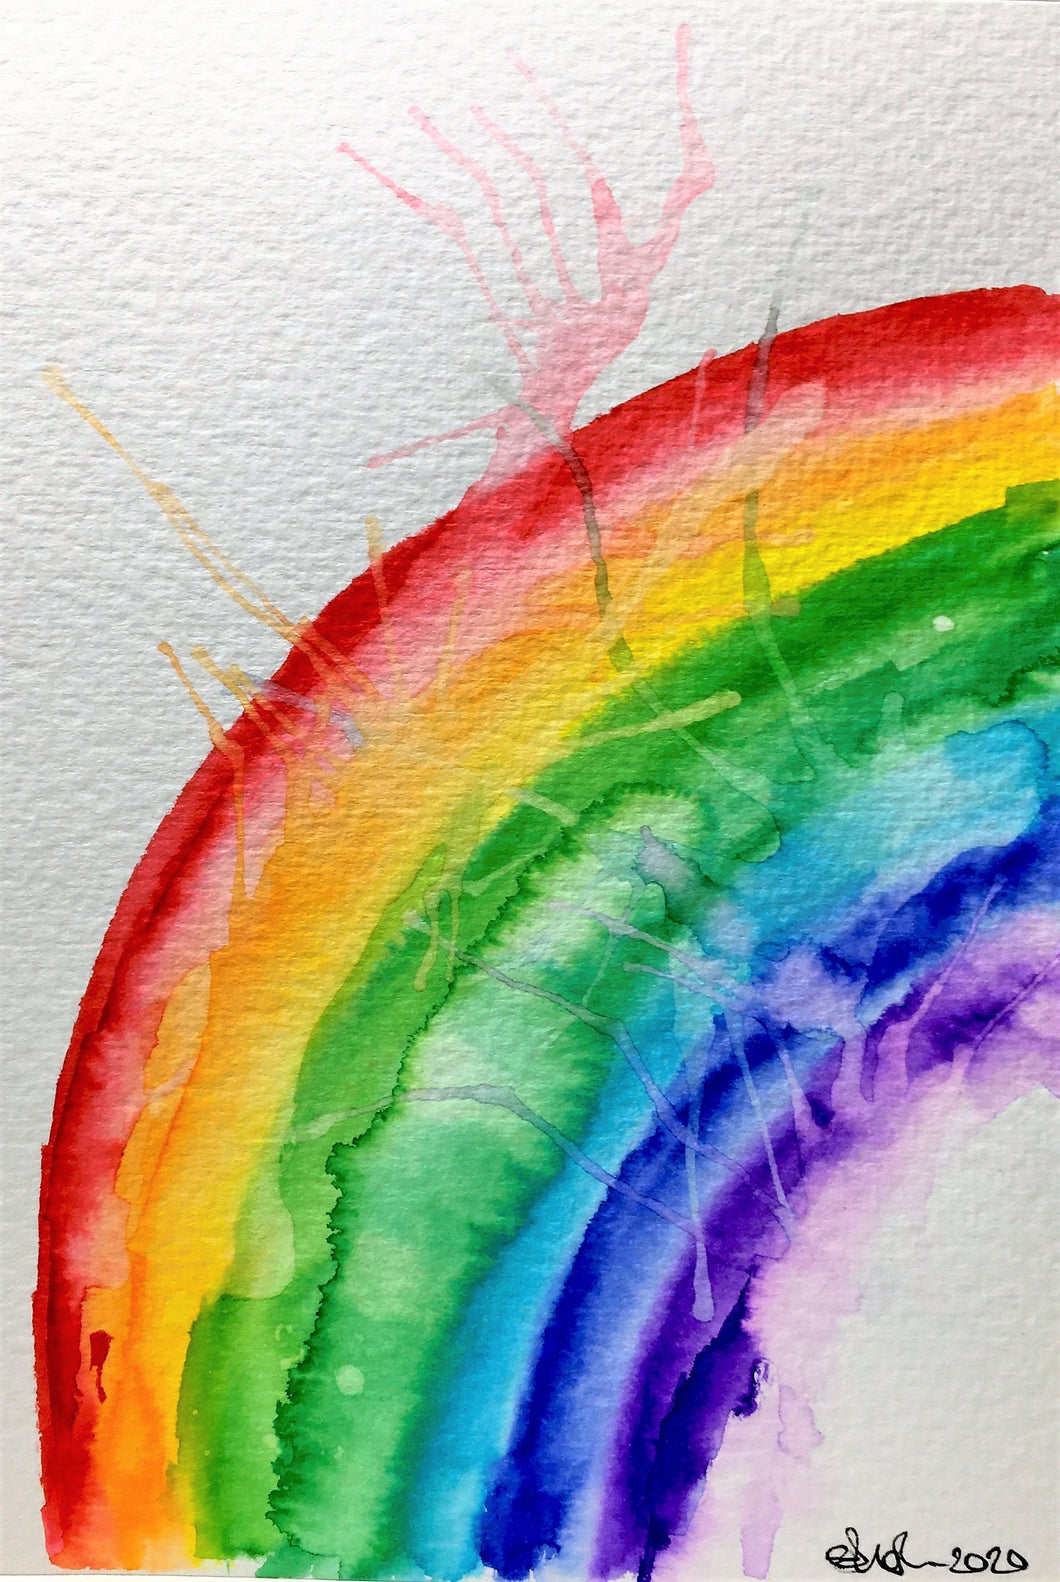 Original Hand Painted Greeting Card - Abstract Small Splatter Rainbow - eDgE dEsiGn London